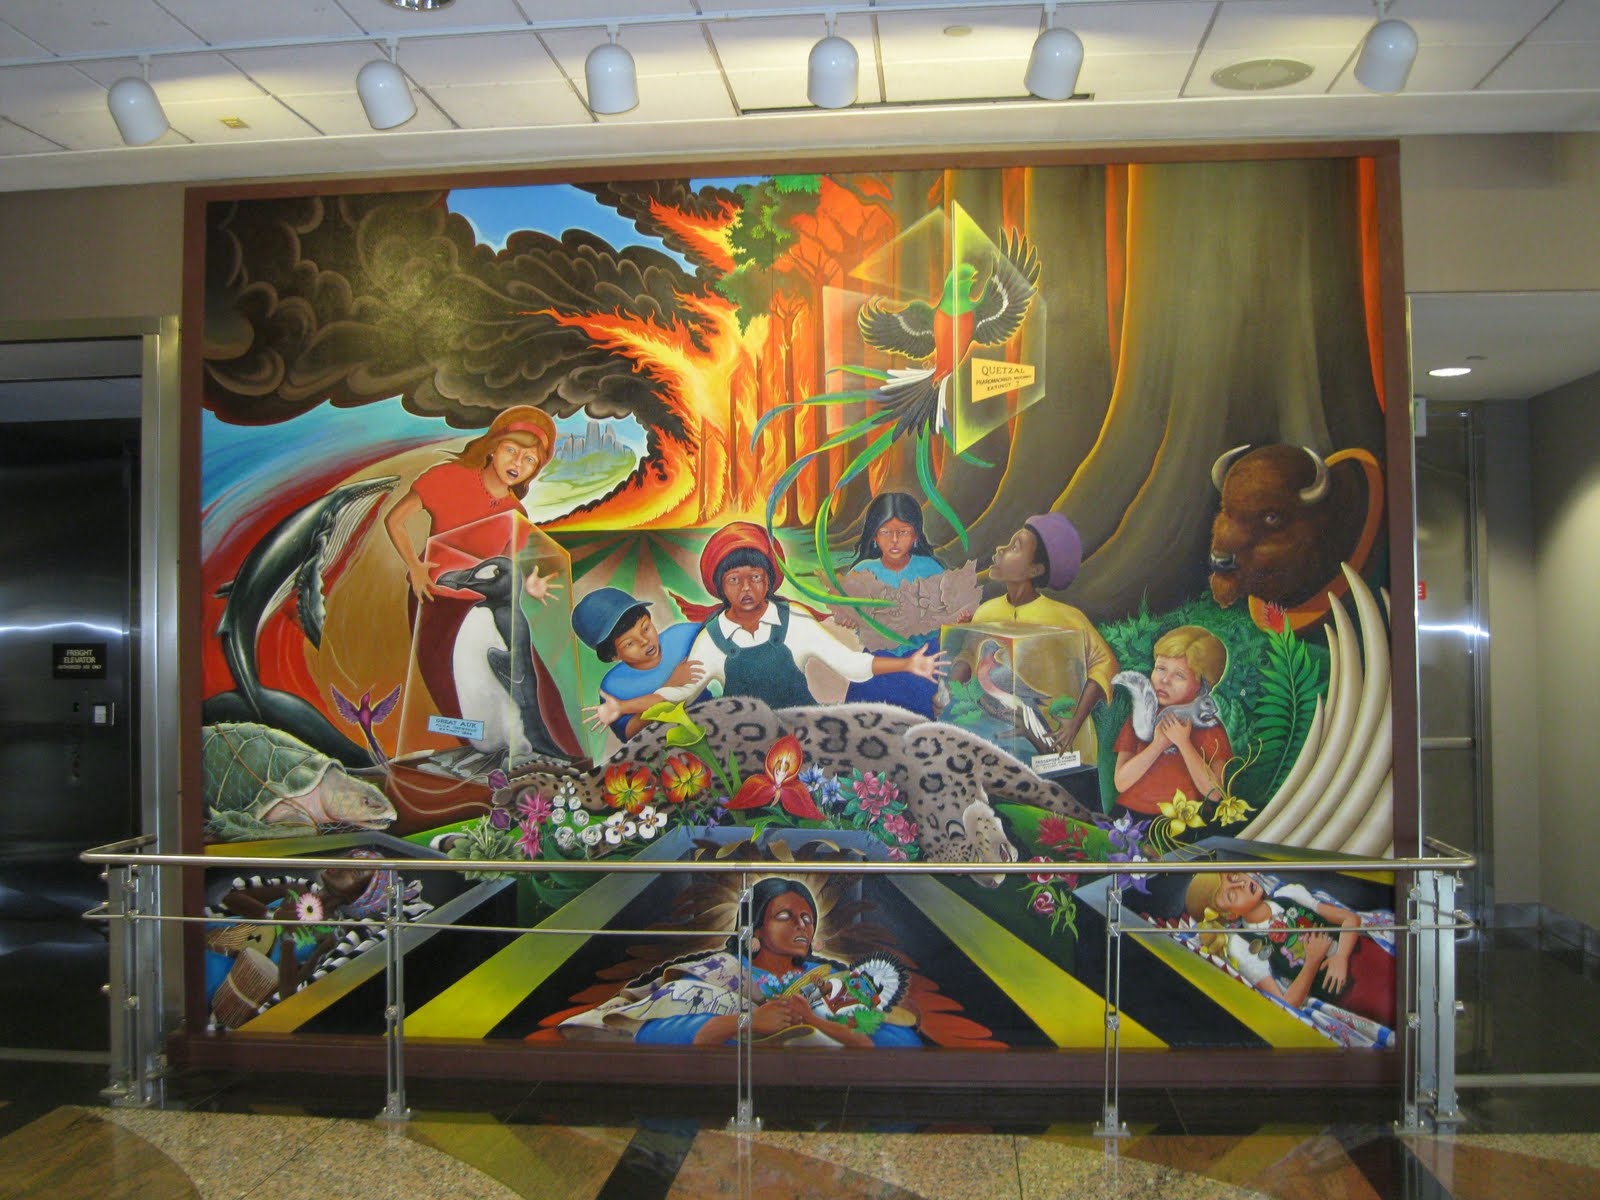 Macro bonfire a brief comment about denver airport for Denver international airport mural